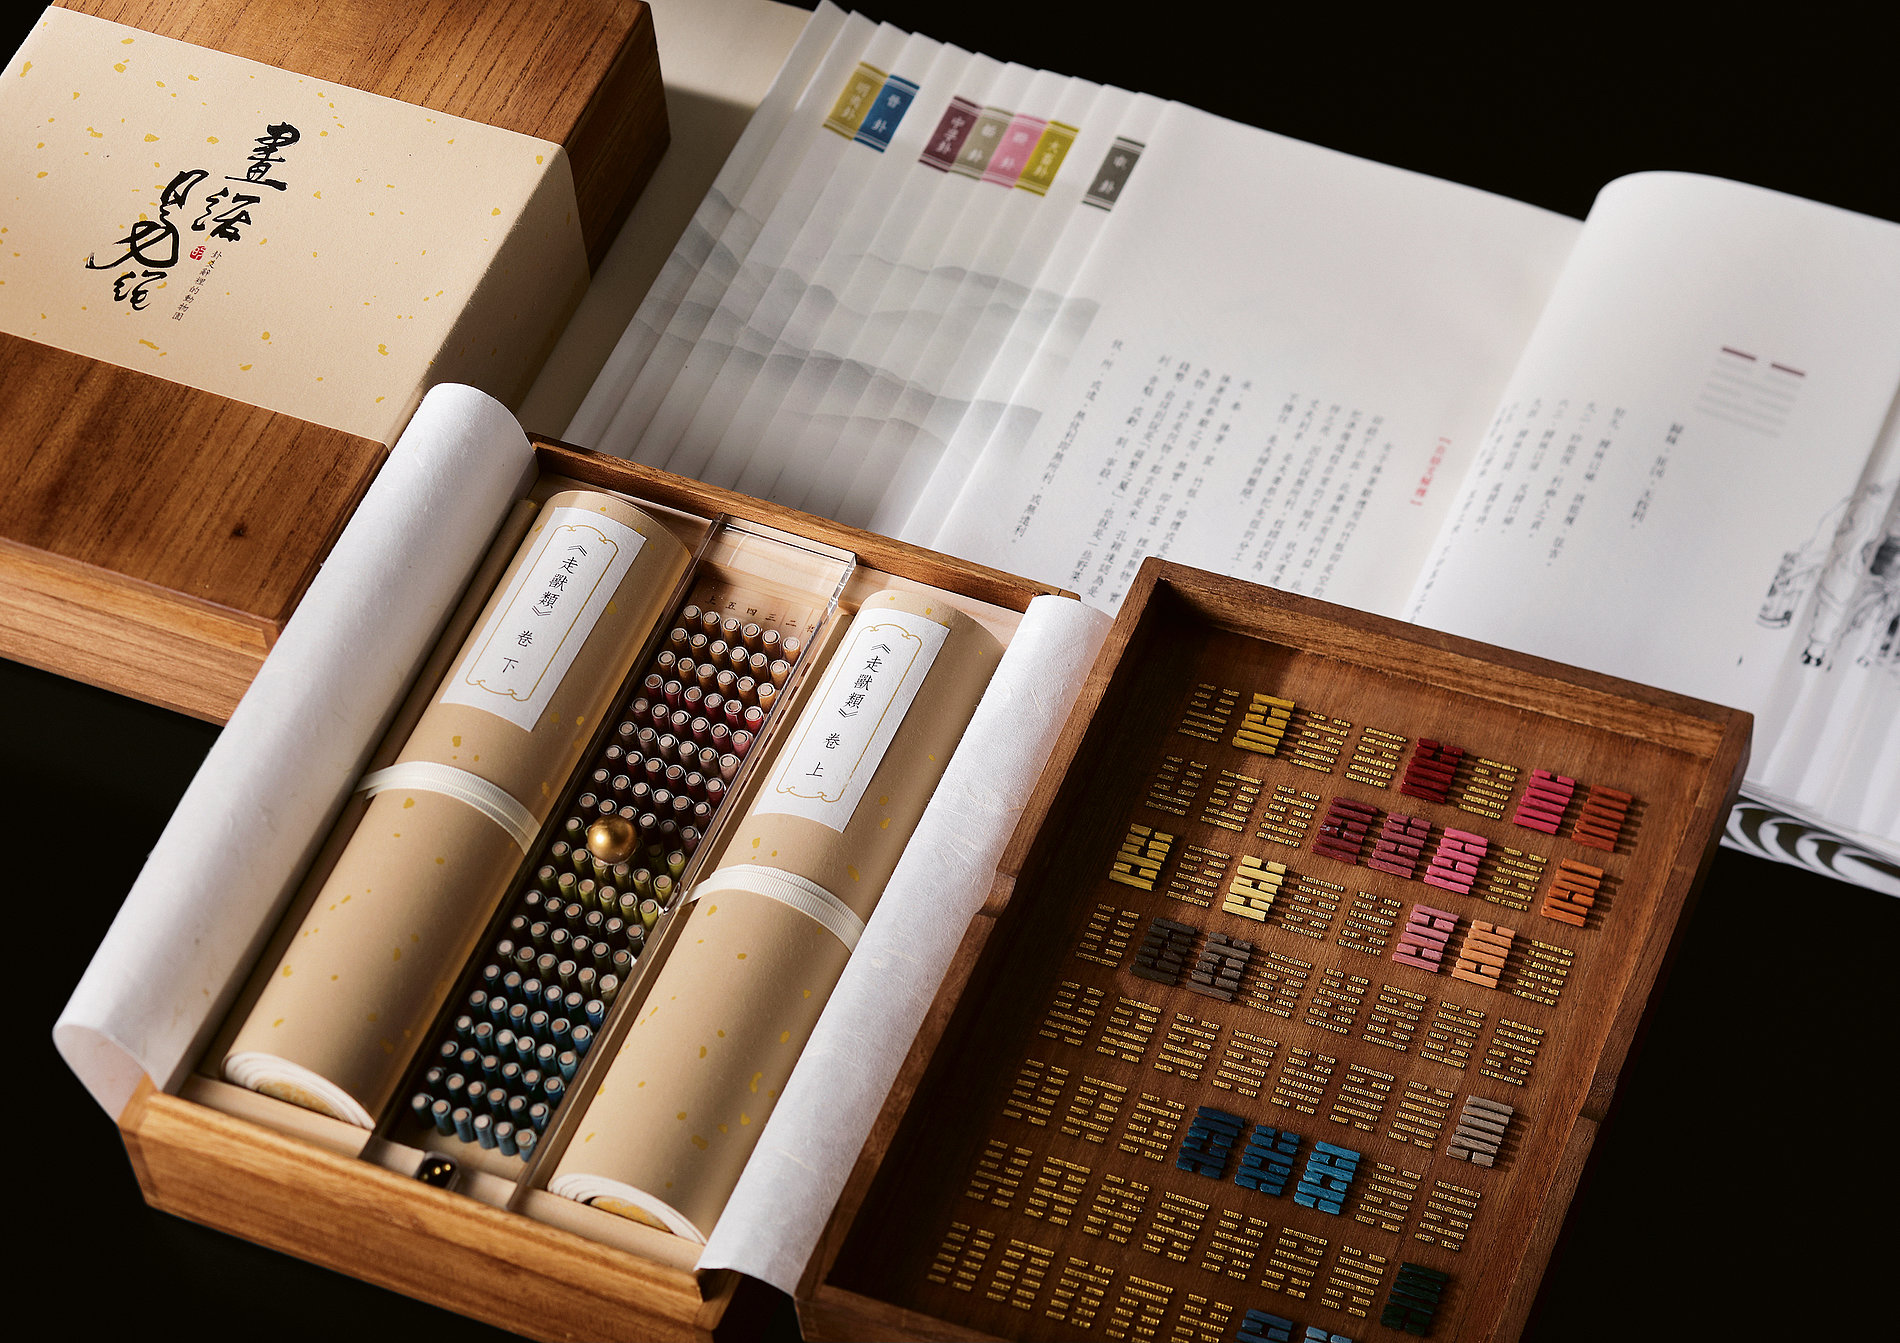 Telling the stories of the I Ching | Red Dot Design Award